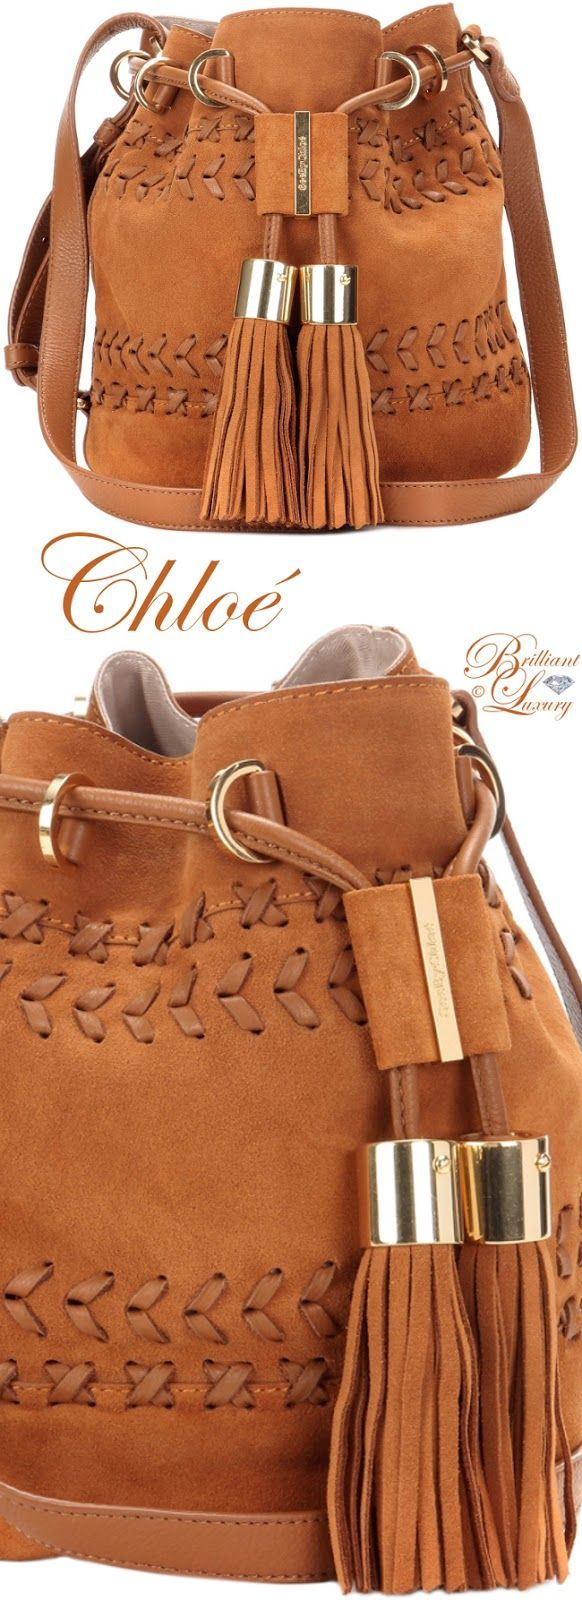 Brilliant Luxury by Emmy DE ♦ Chloé Vicki Small Suede And Leather Bucket Bag